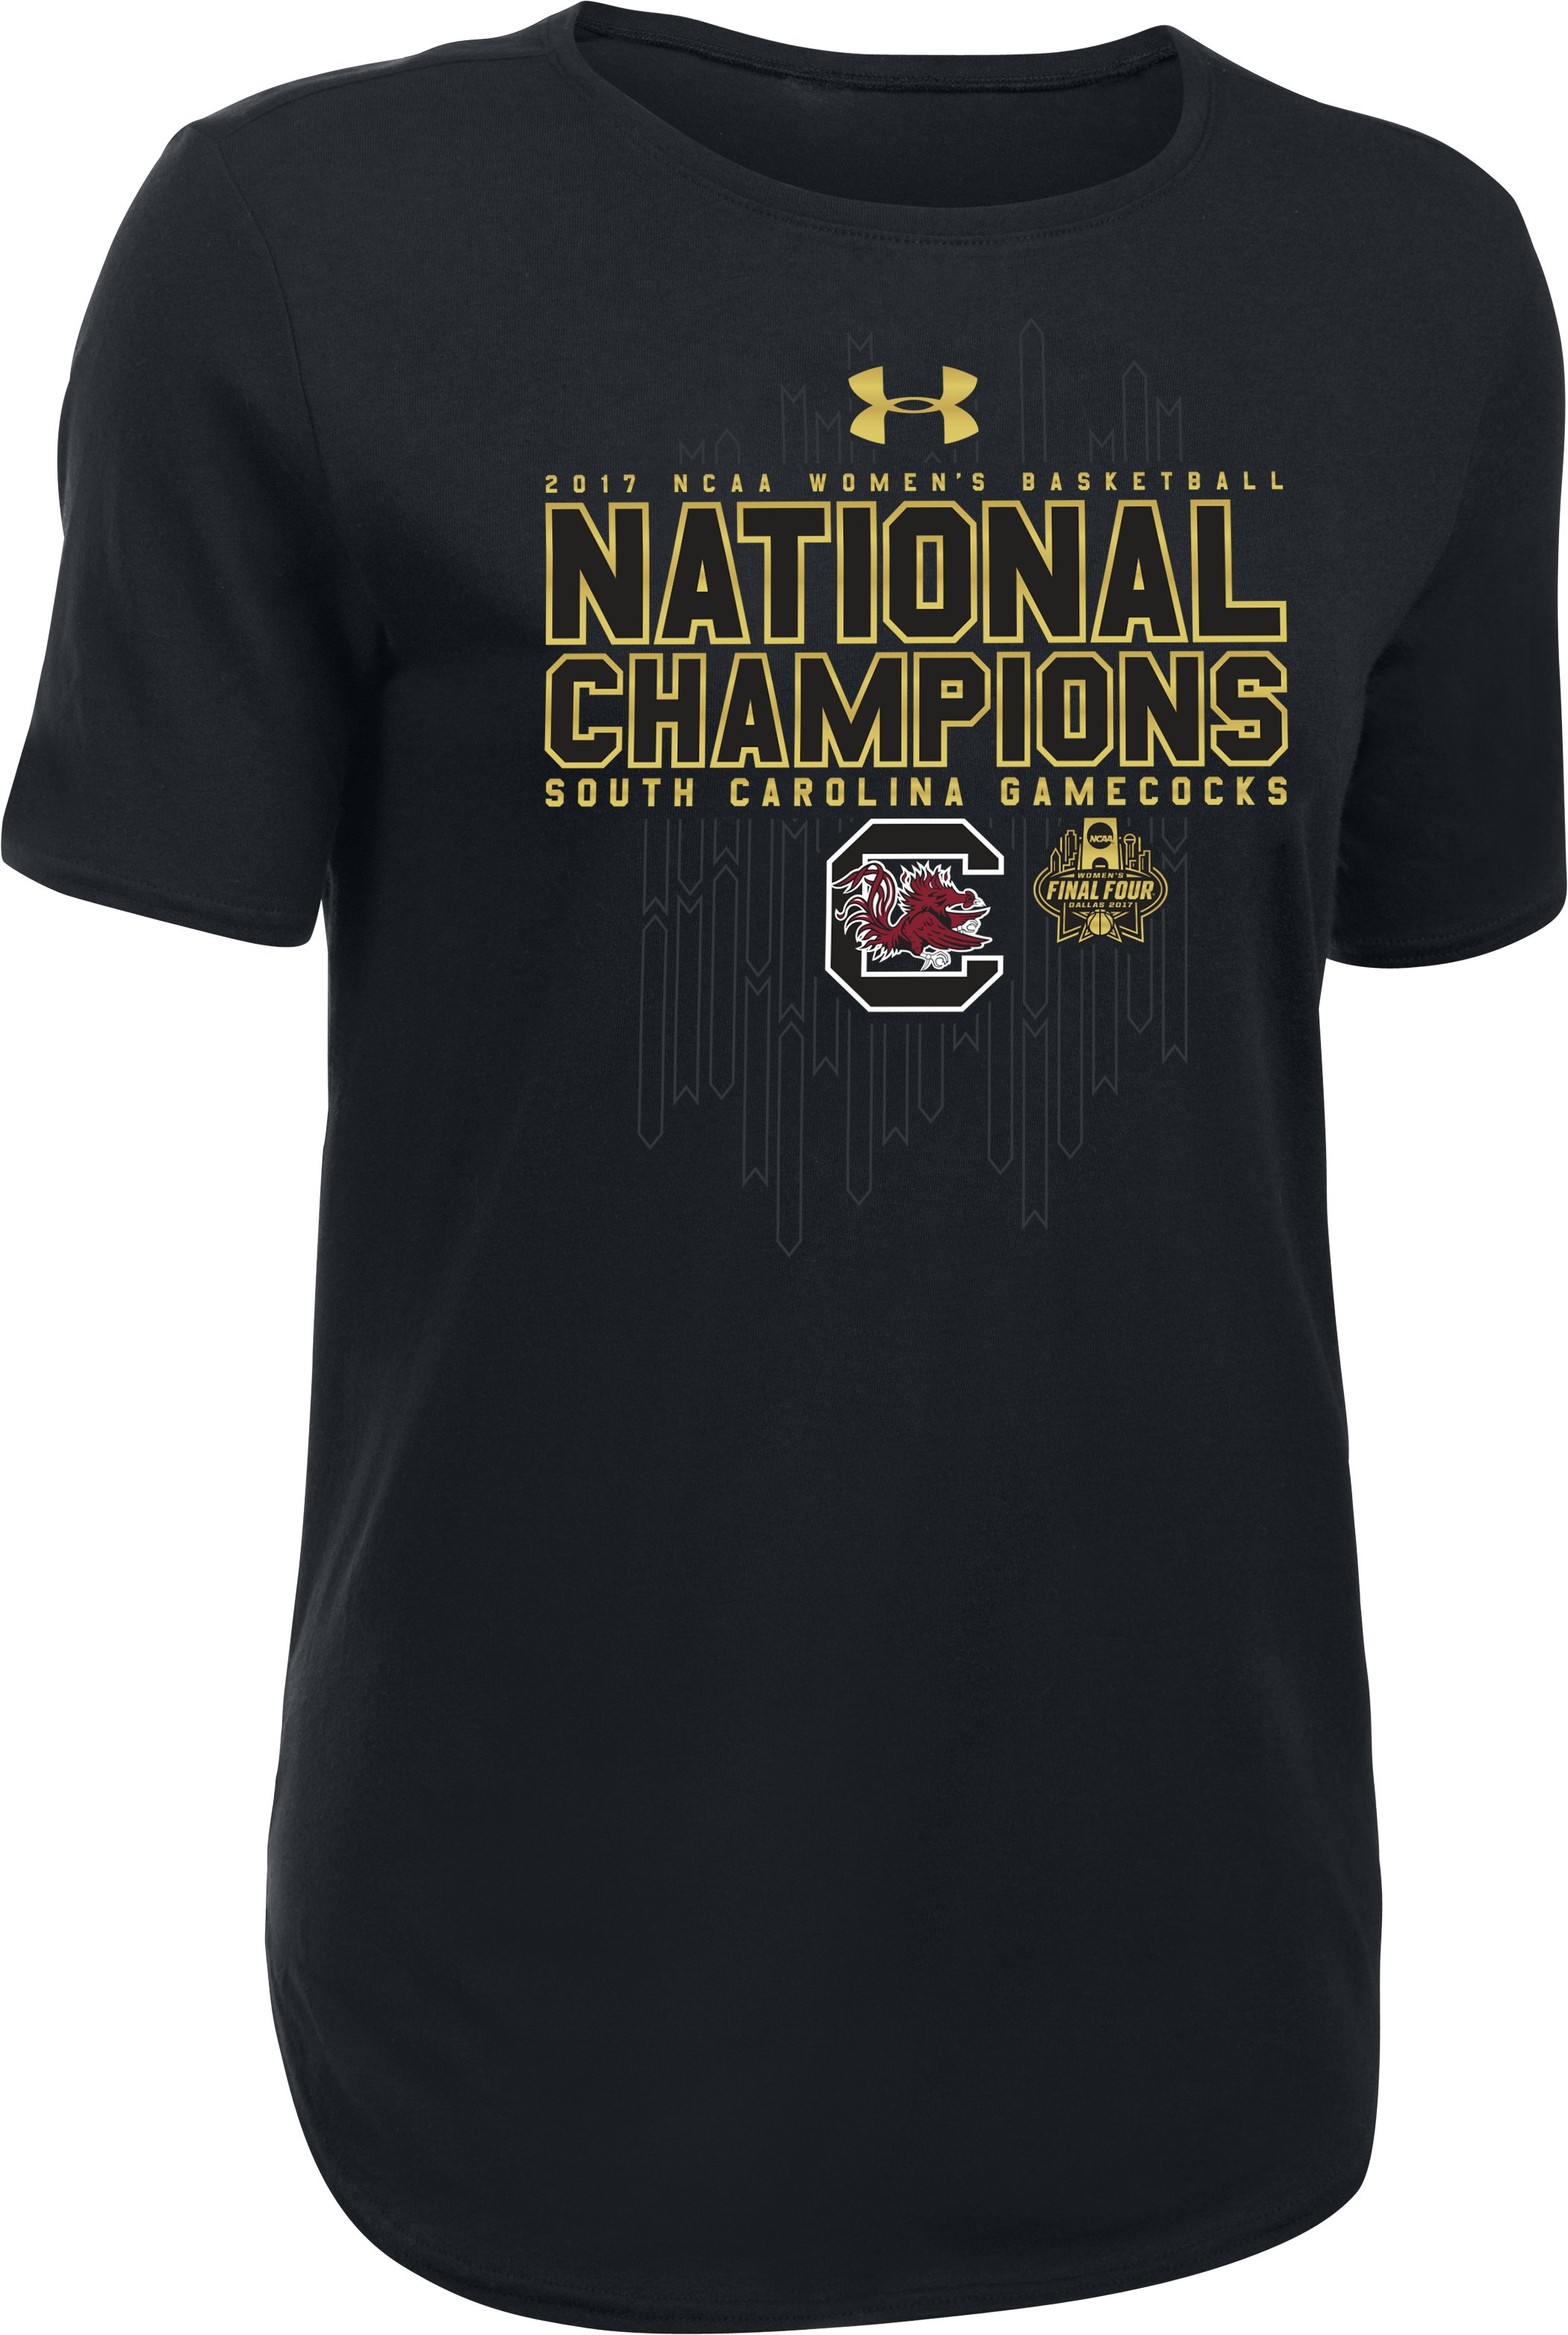 Women's South Carolina Women's National Champ T-Shirt, Black